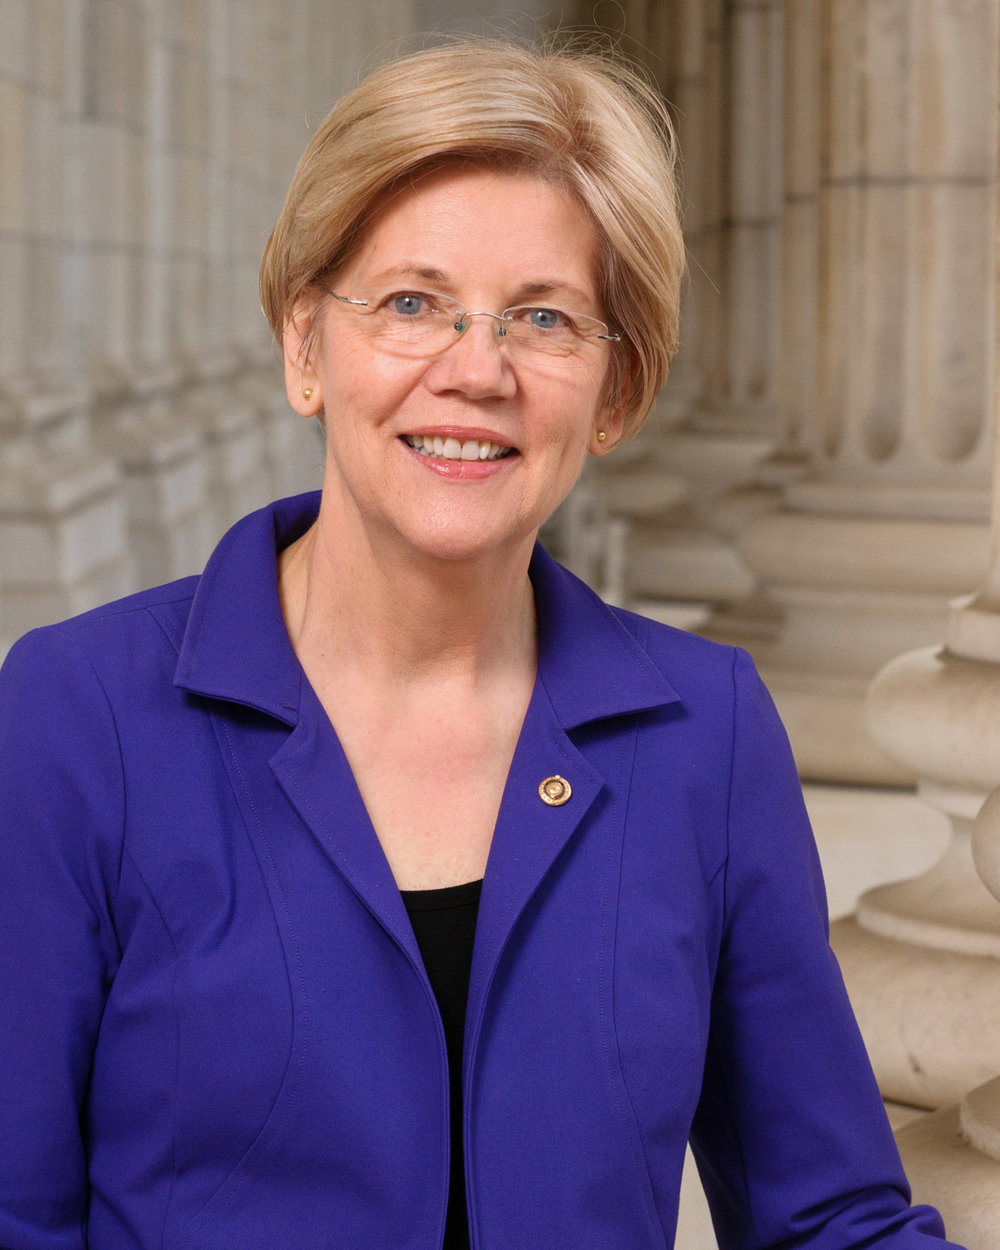 U.S. Senator Elizabeth Warren - Boston Office2400 JFK Federal Building 15 New Sudbury Street Boston, MA 02203 Phone: (617) 565-3170Contact By Email